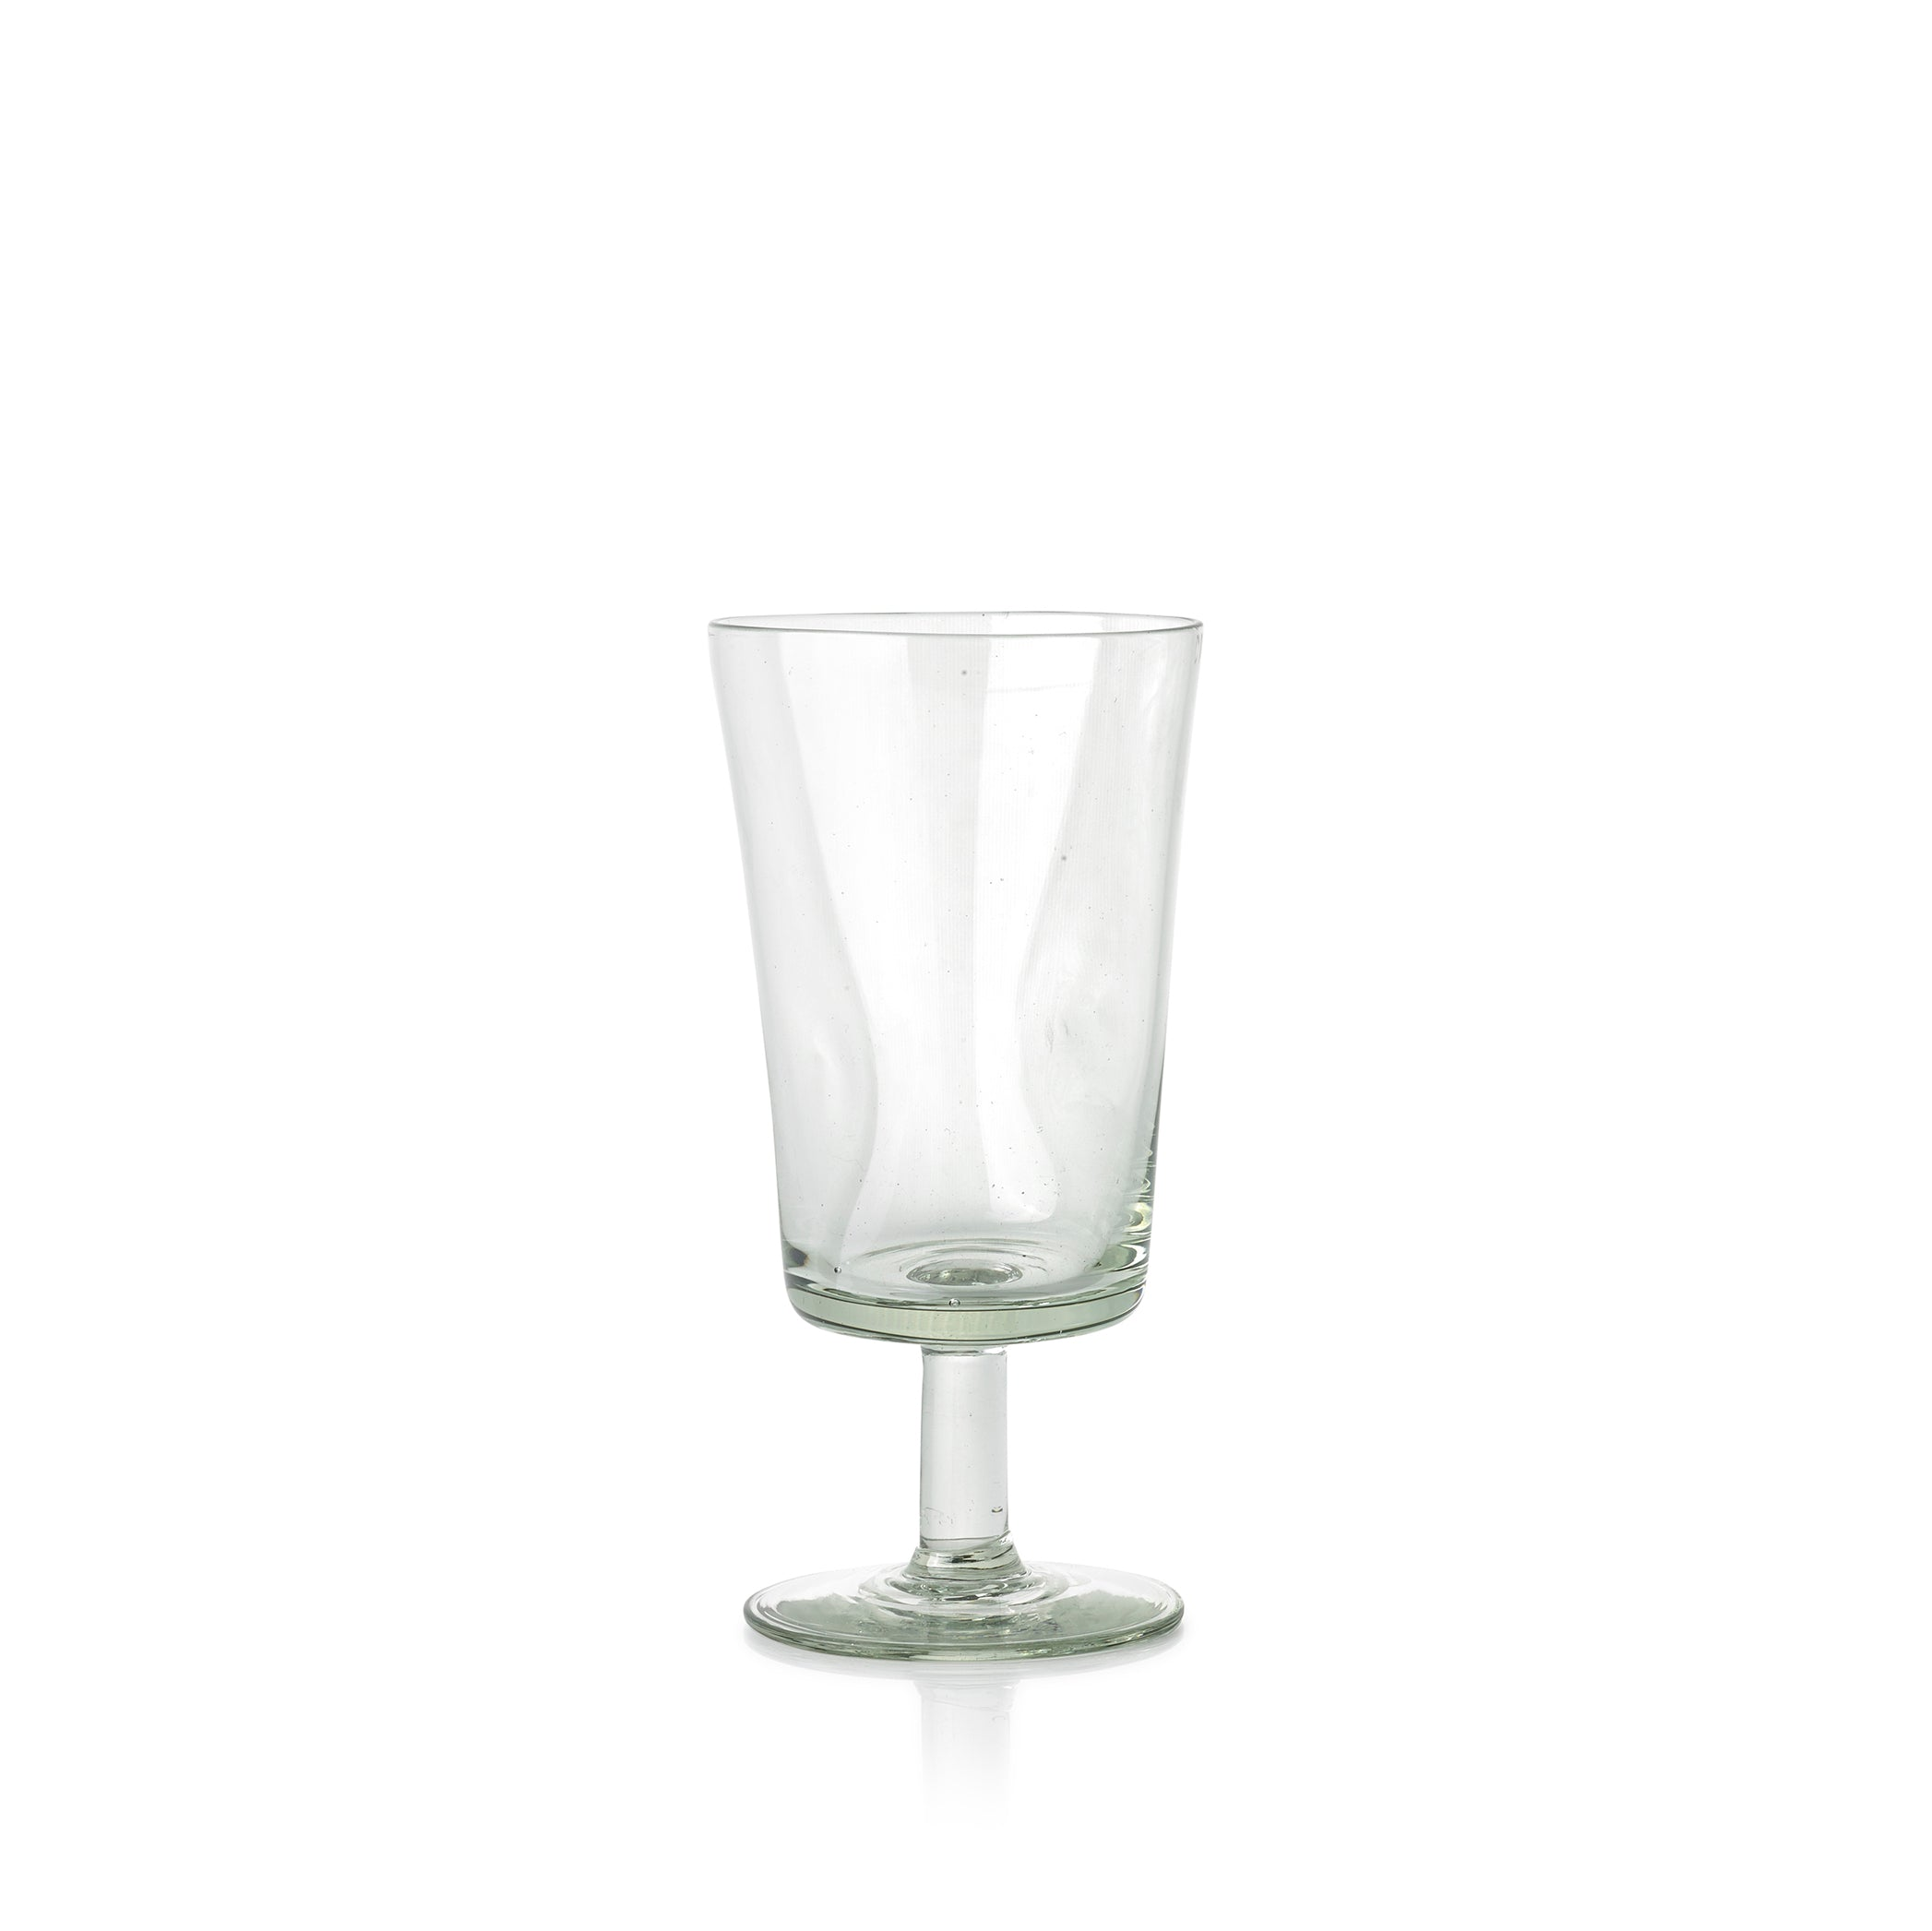 Handblown Dented White Wine Glass from Kingdom of Swaziland